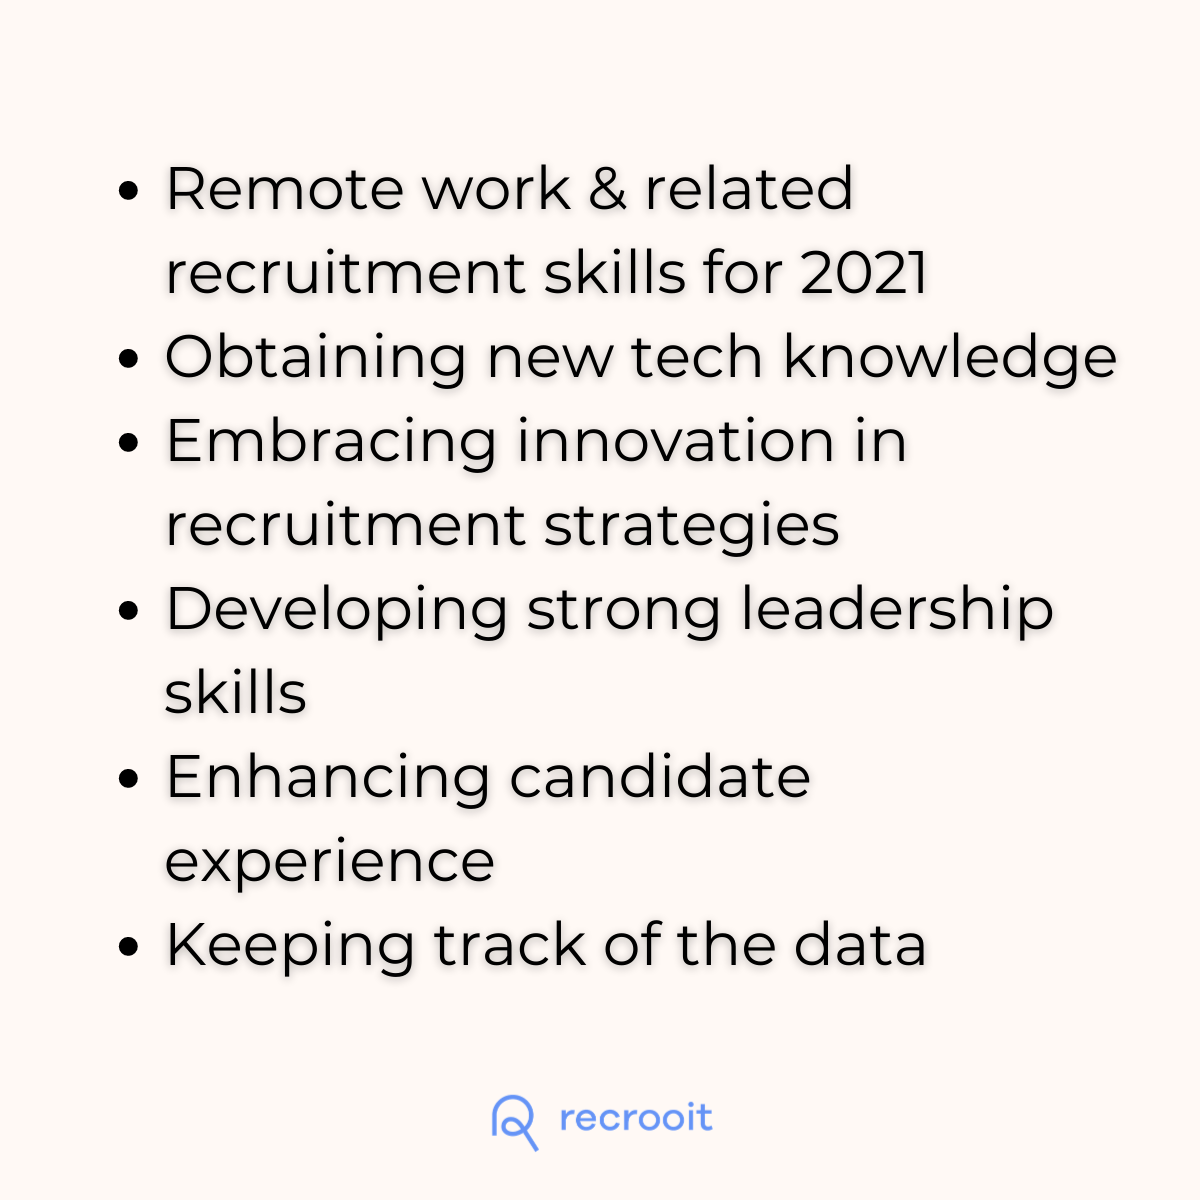 The new trends in recruiting & mandatory recruitment skills for 2021